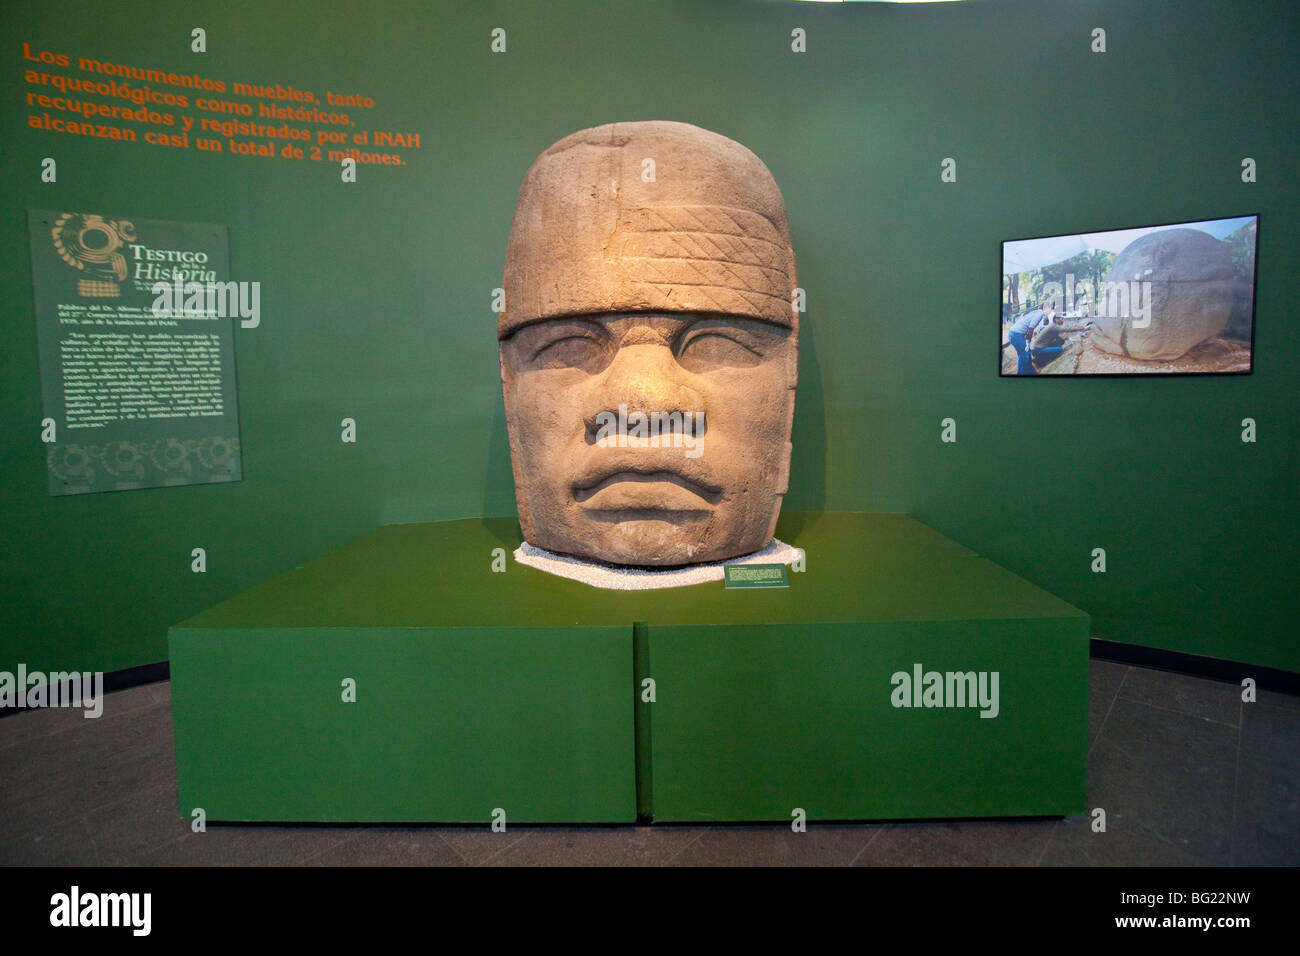 Olmec Colossal Head Sculpture National Museum of Anthropology Exhibit in Mexico City - Stock Image